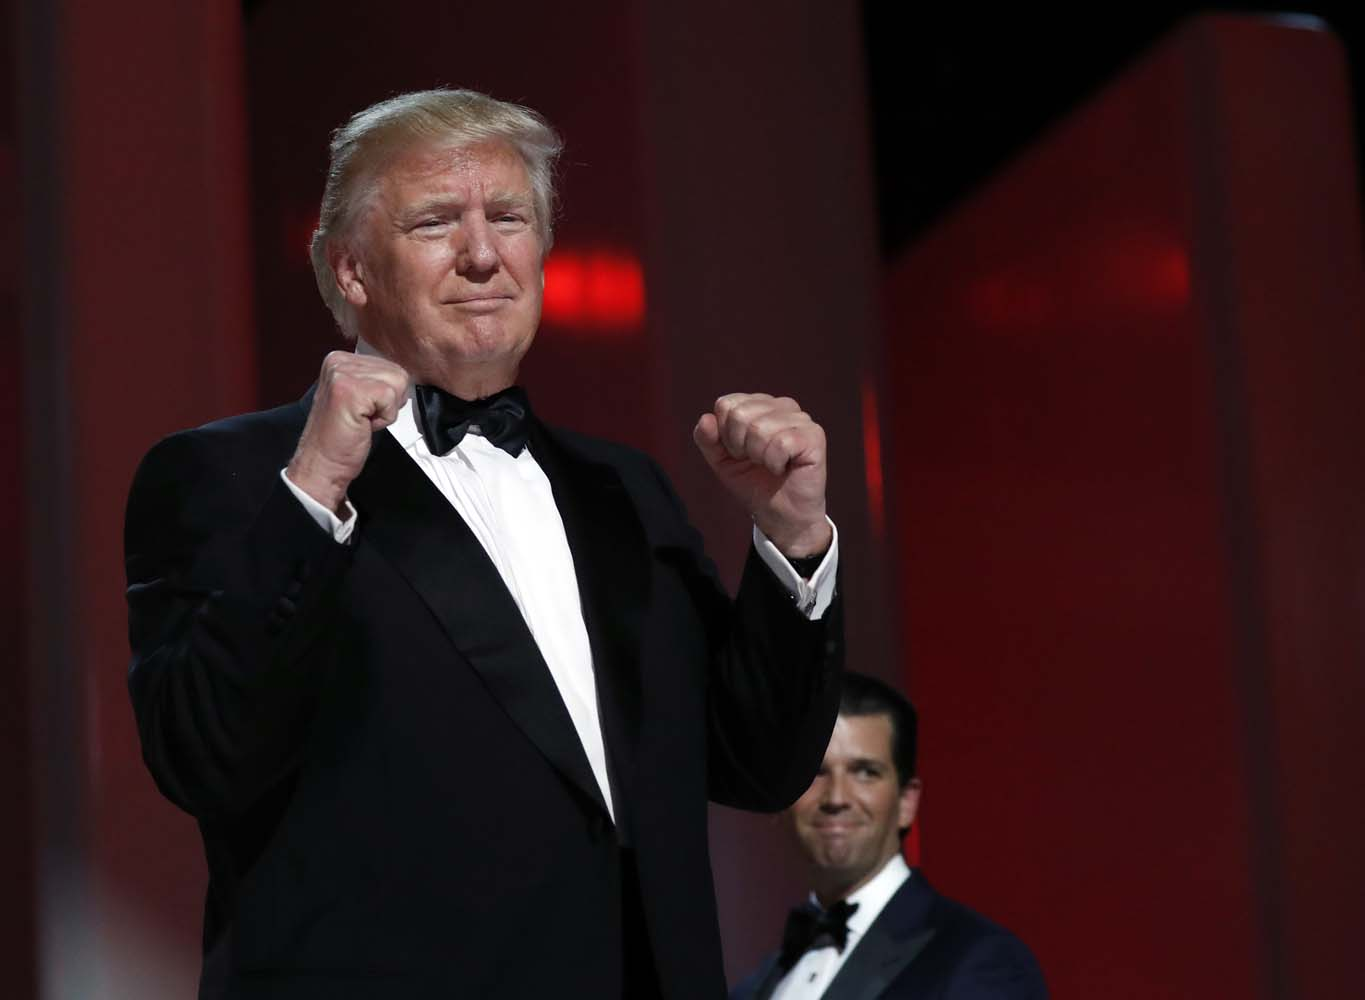 President Donald Trump acknowledges the crowd at the Liberty Ball, Friday, Jan. 20, 2017, in Washington. (AP Photo/Alex Brandon)